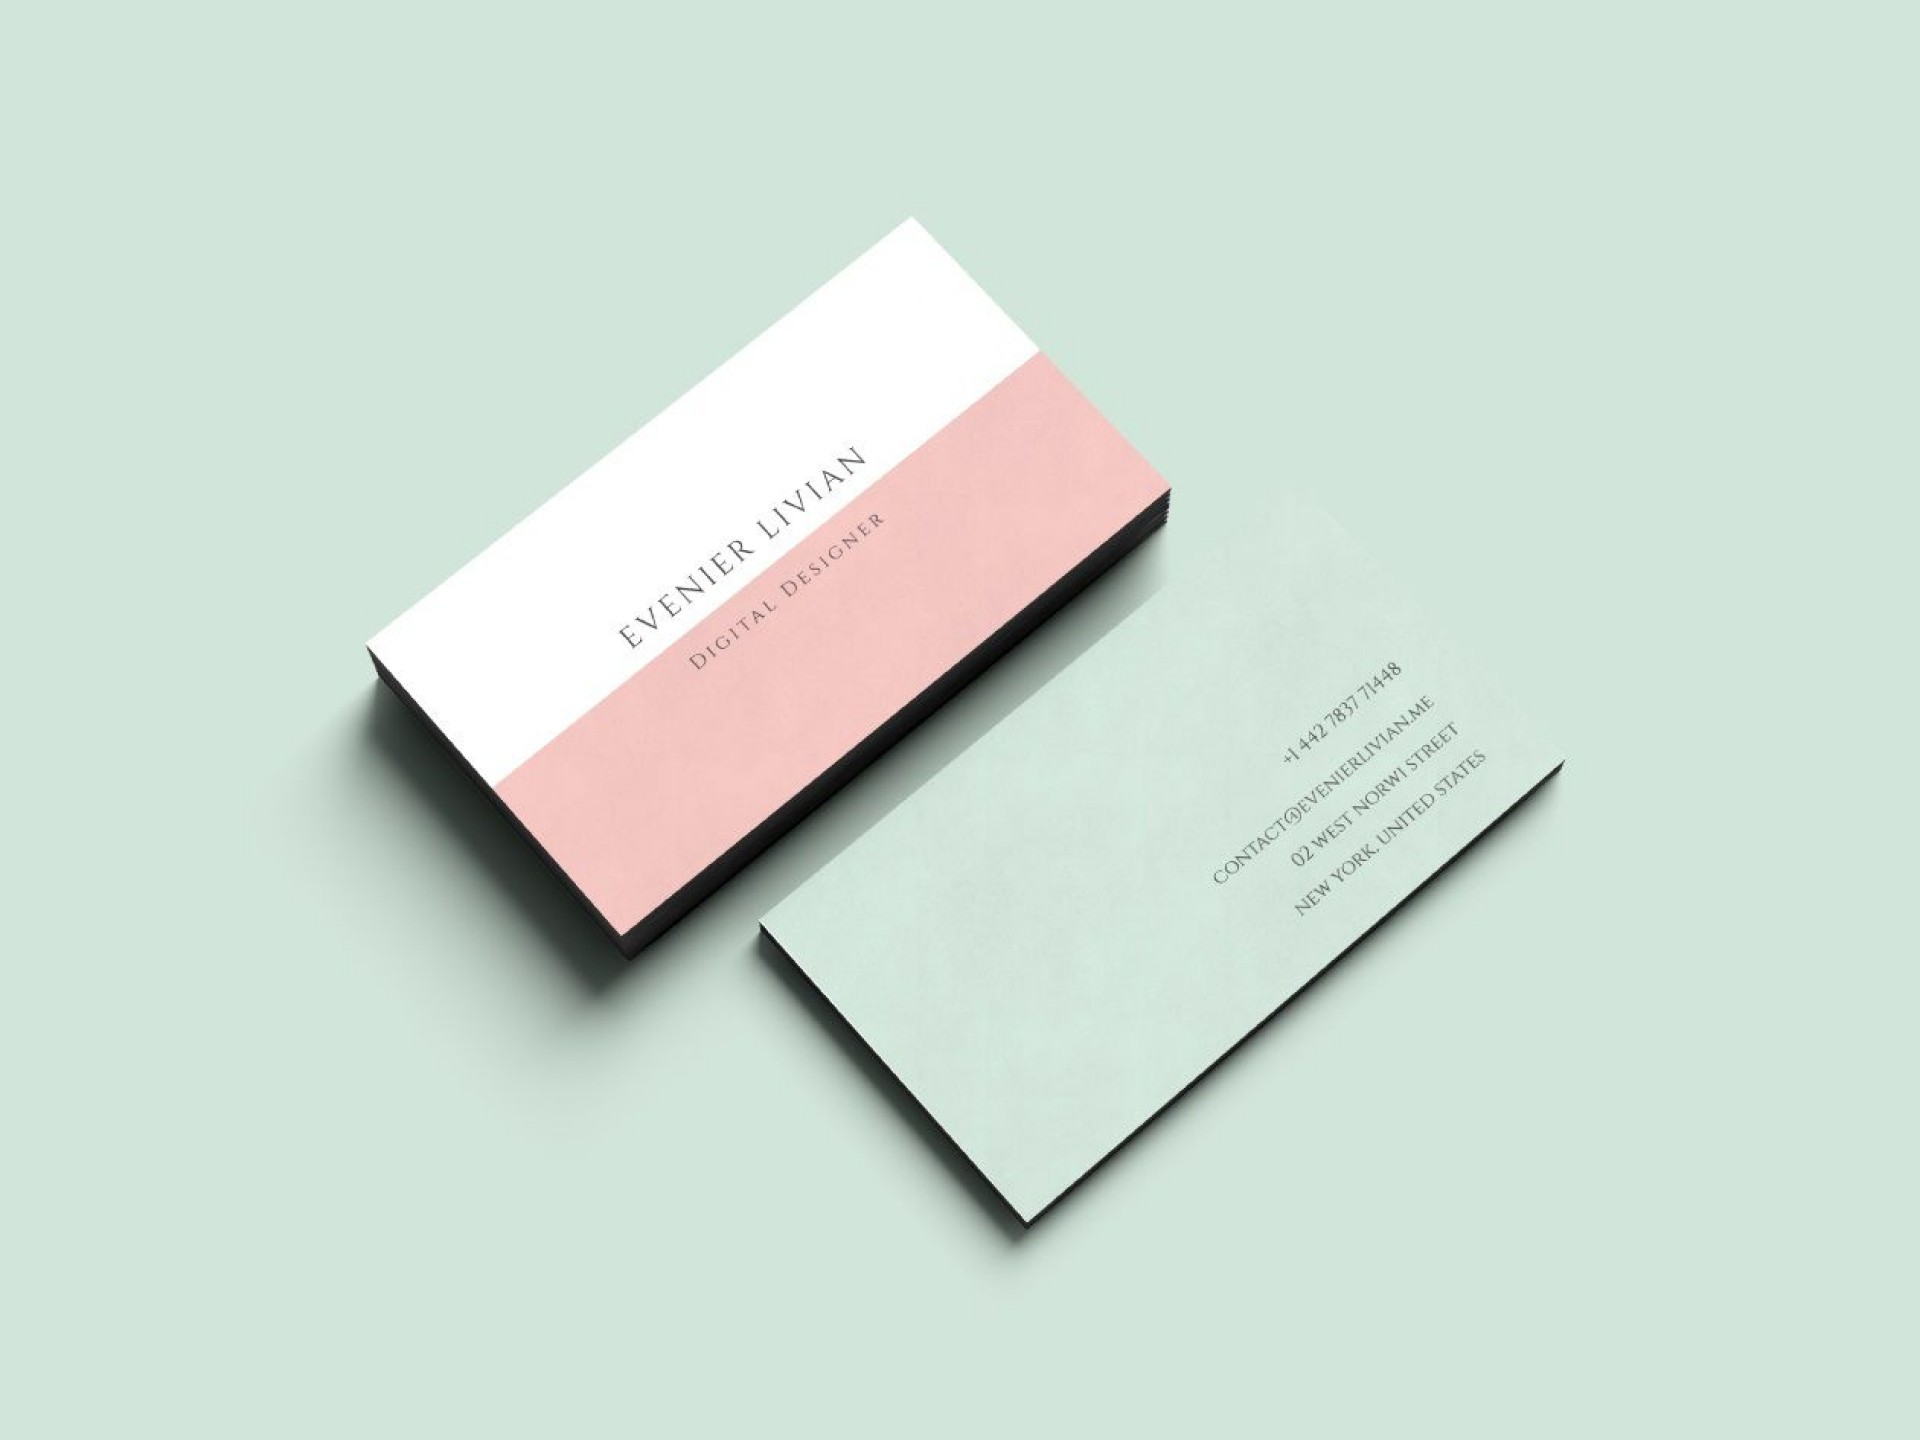 003 Fearsome Minimalist Busines Card Template Free Concept  Minimal Psd1920